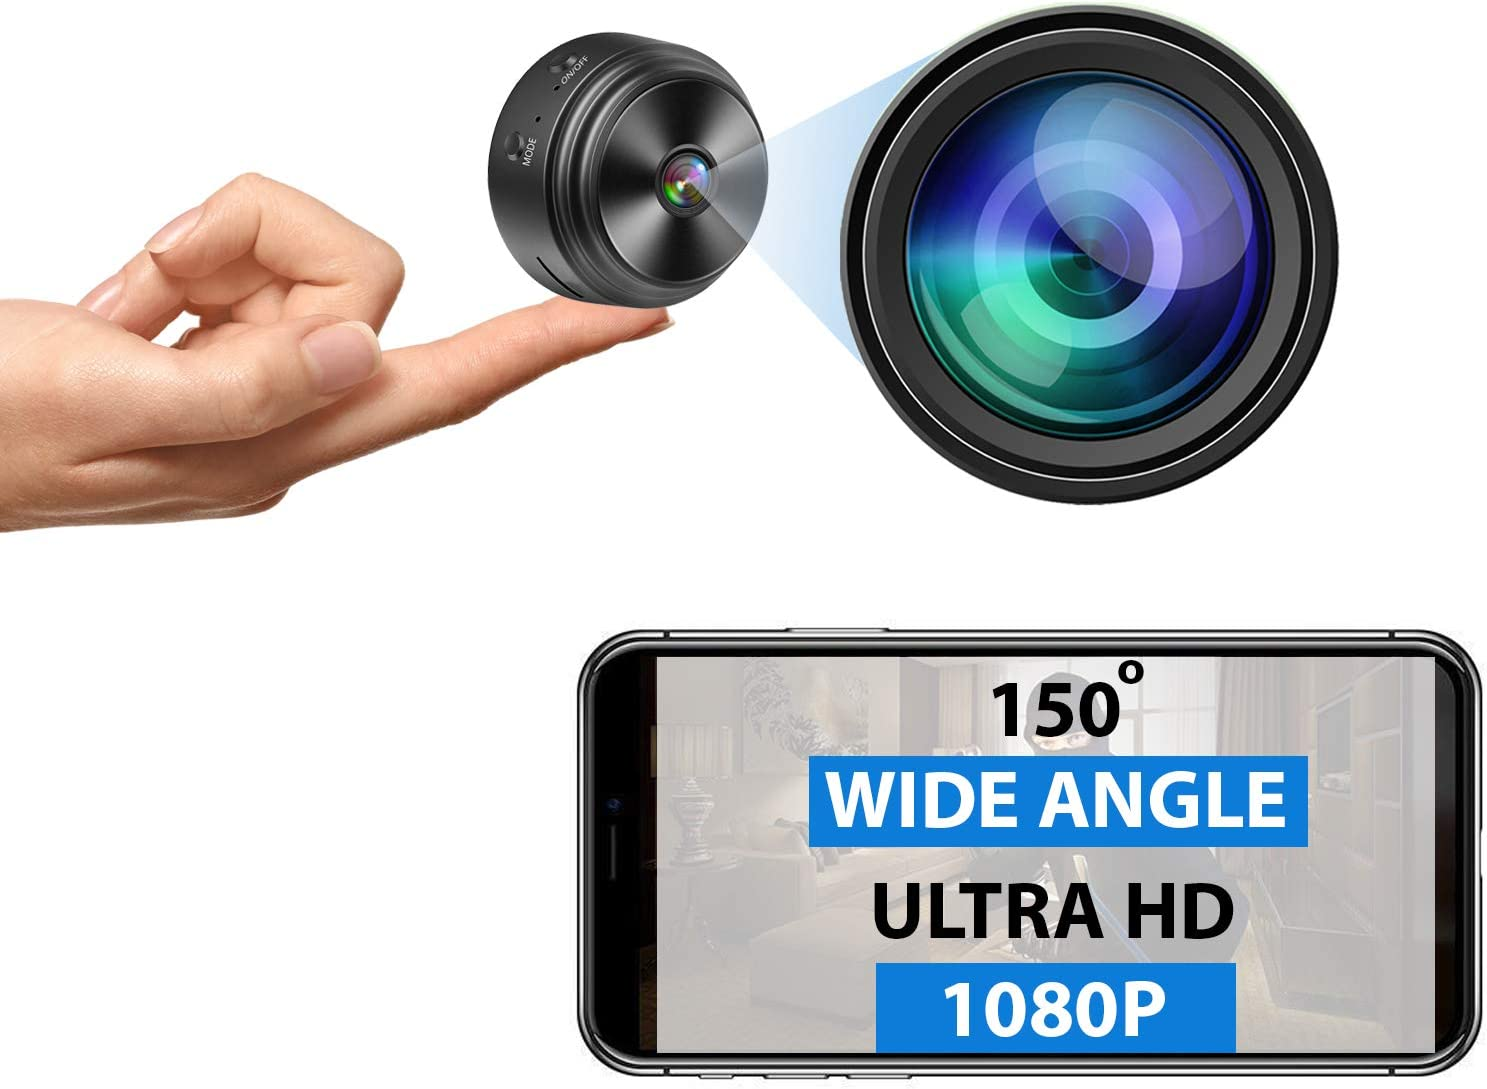 Mini Spy Camera - Wireless Hidden Camera - Ultra HD - Portable Small 1080P WiFi Nanny Cam with Night Vision and Motion Detection - Premium Indoor Covert Security Camera - Phone App - Built-in Battery